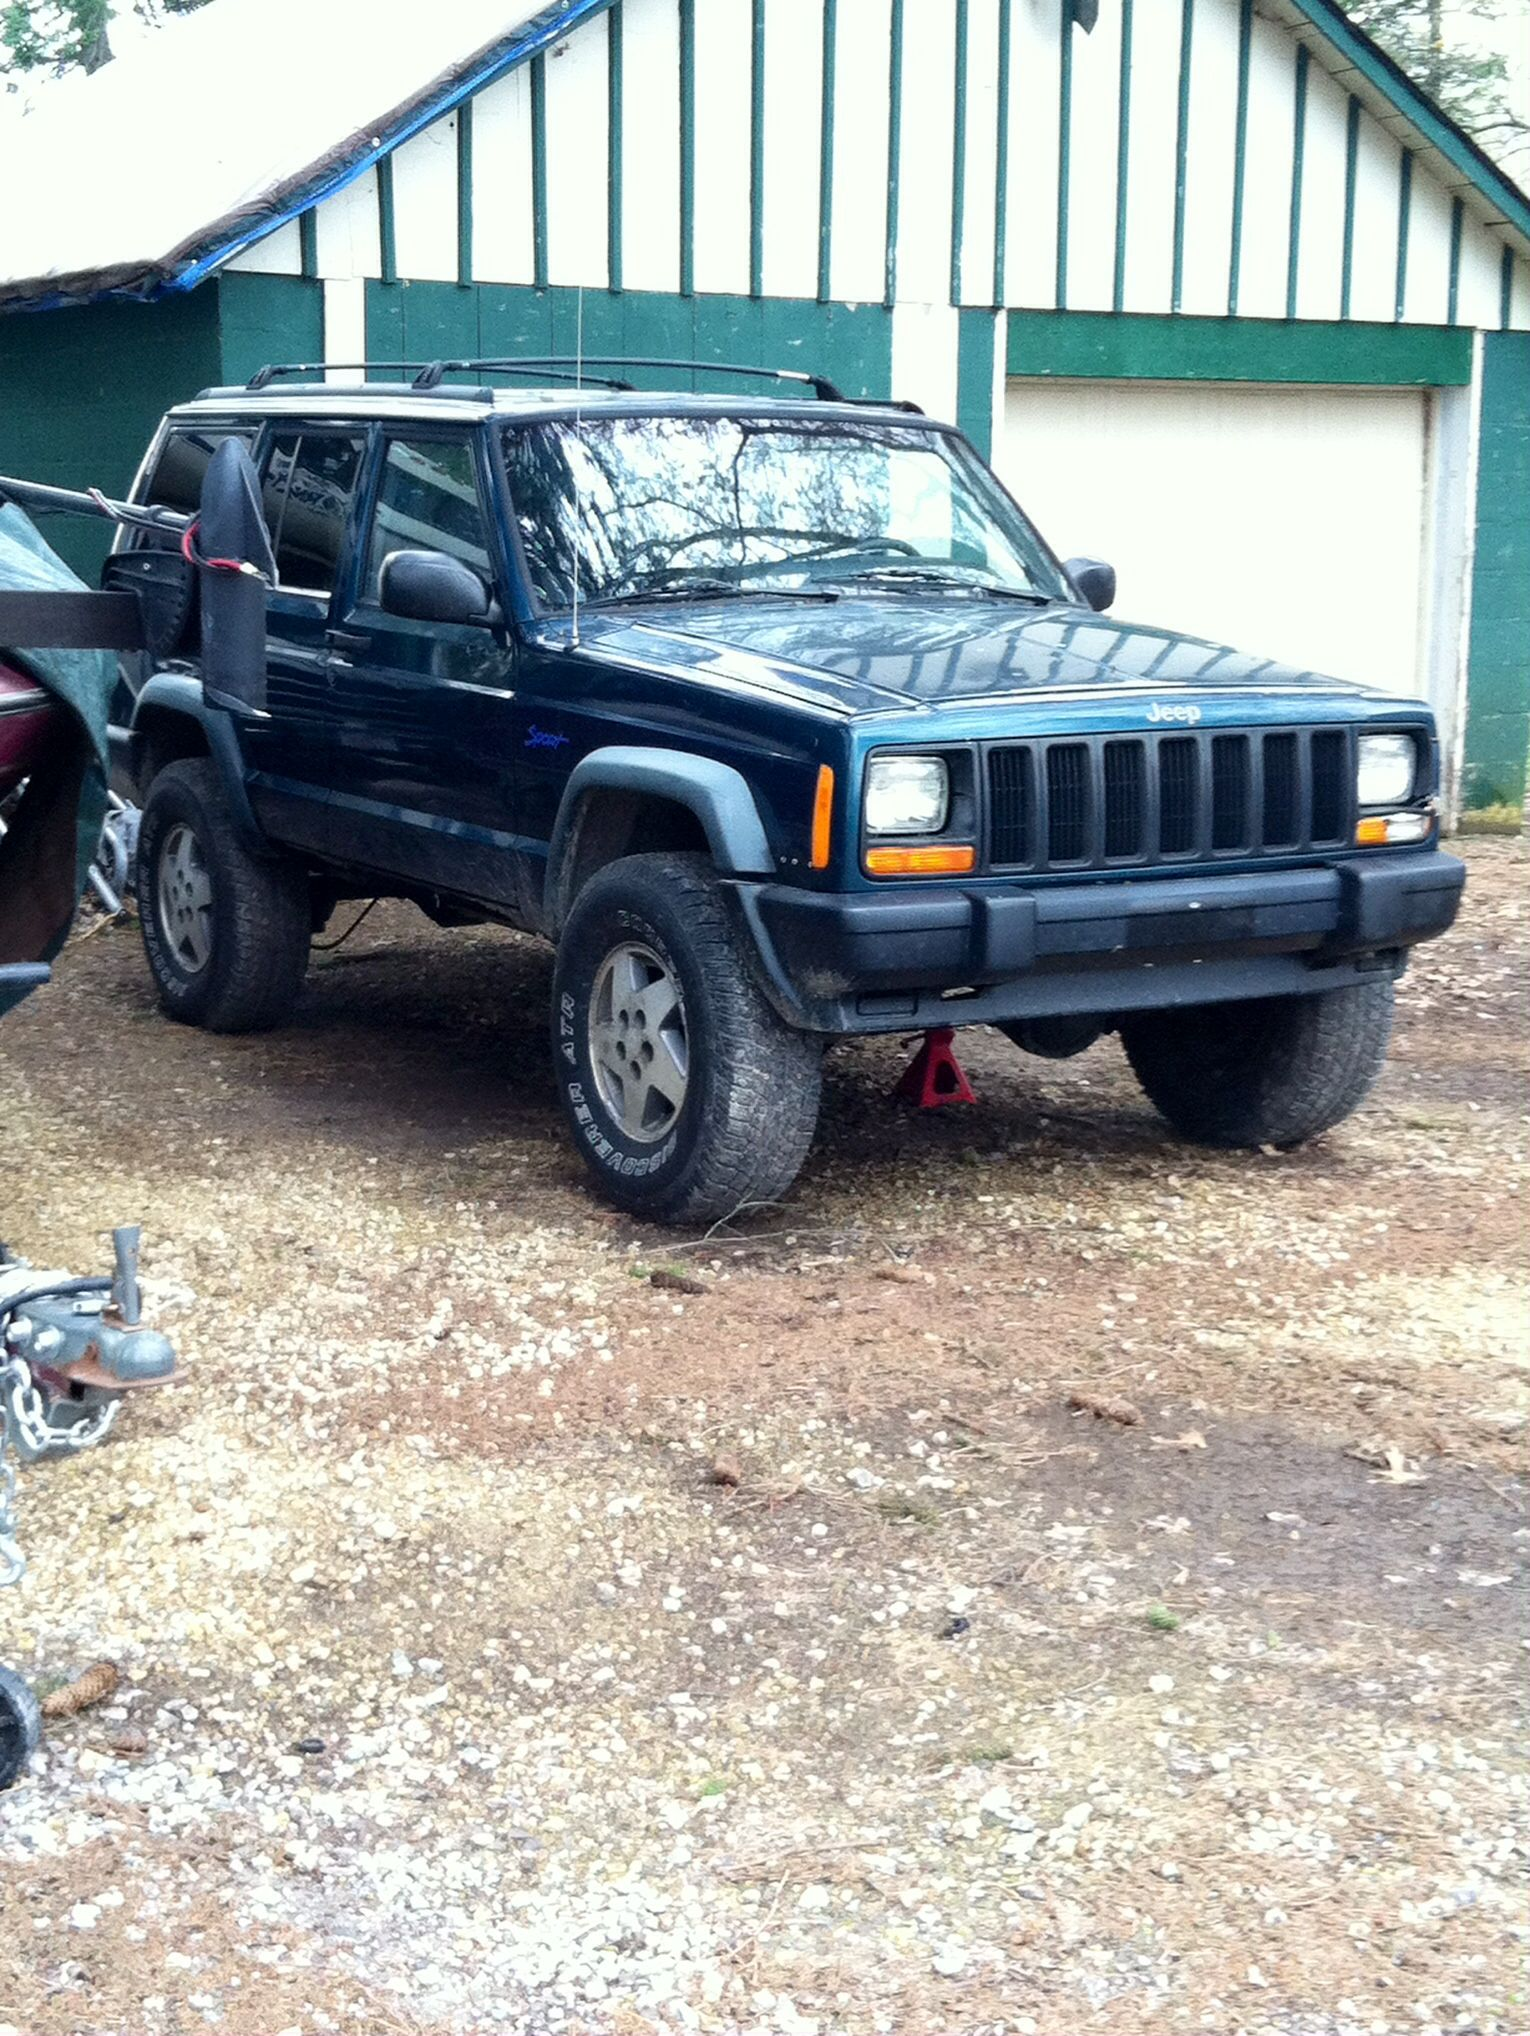 cherokee buy r tech c jeep forums items wanted or trade forum fs sale other